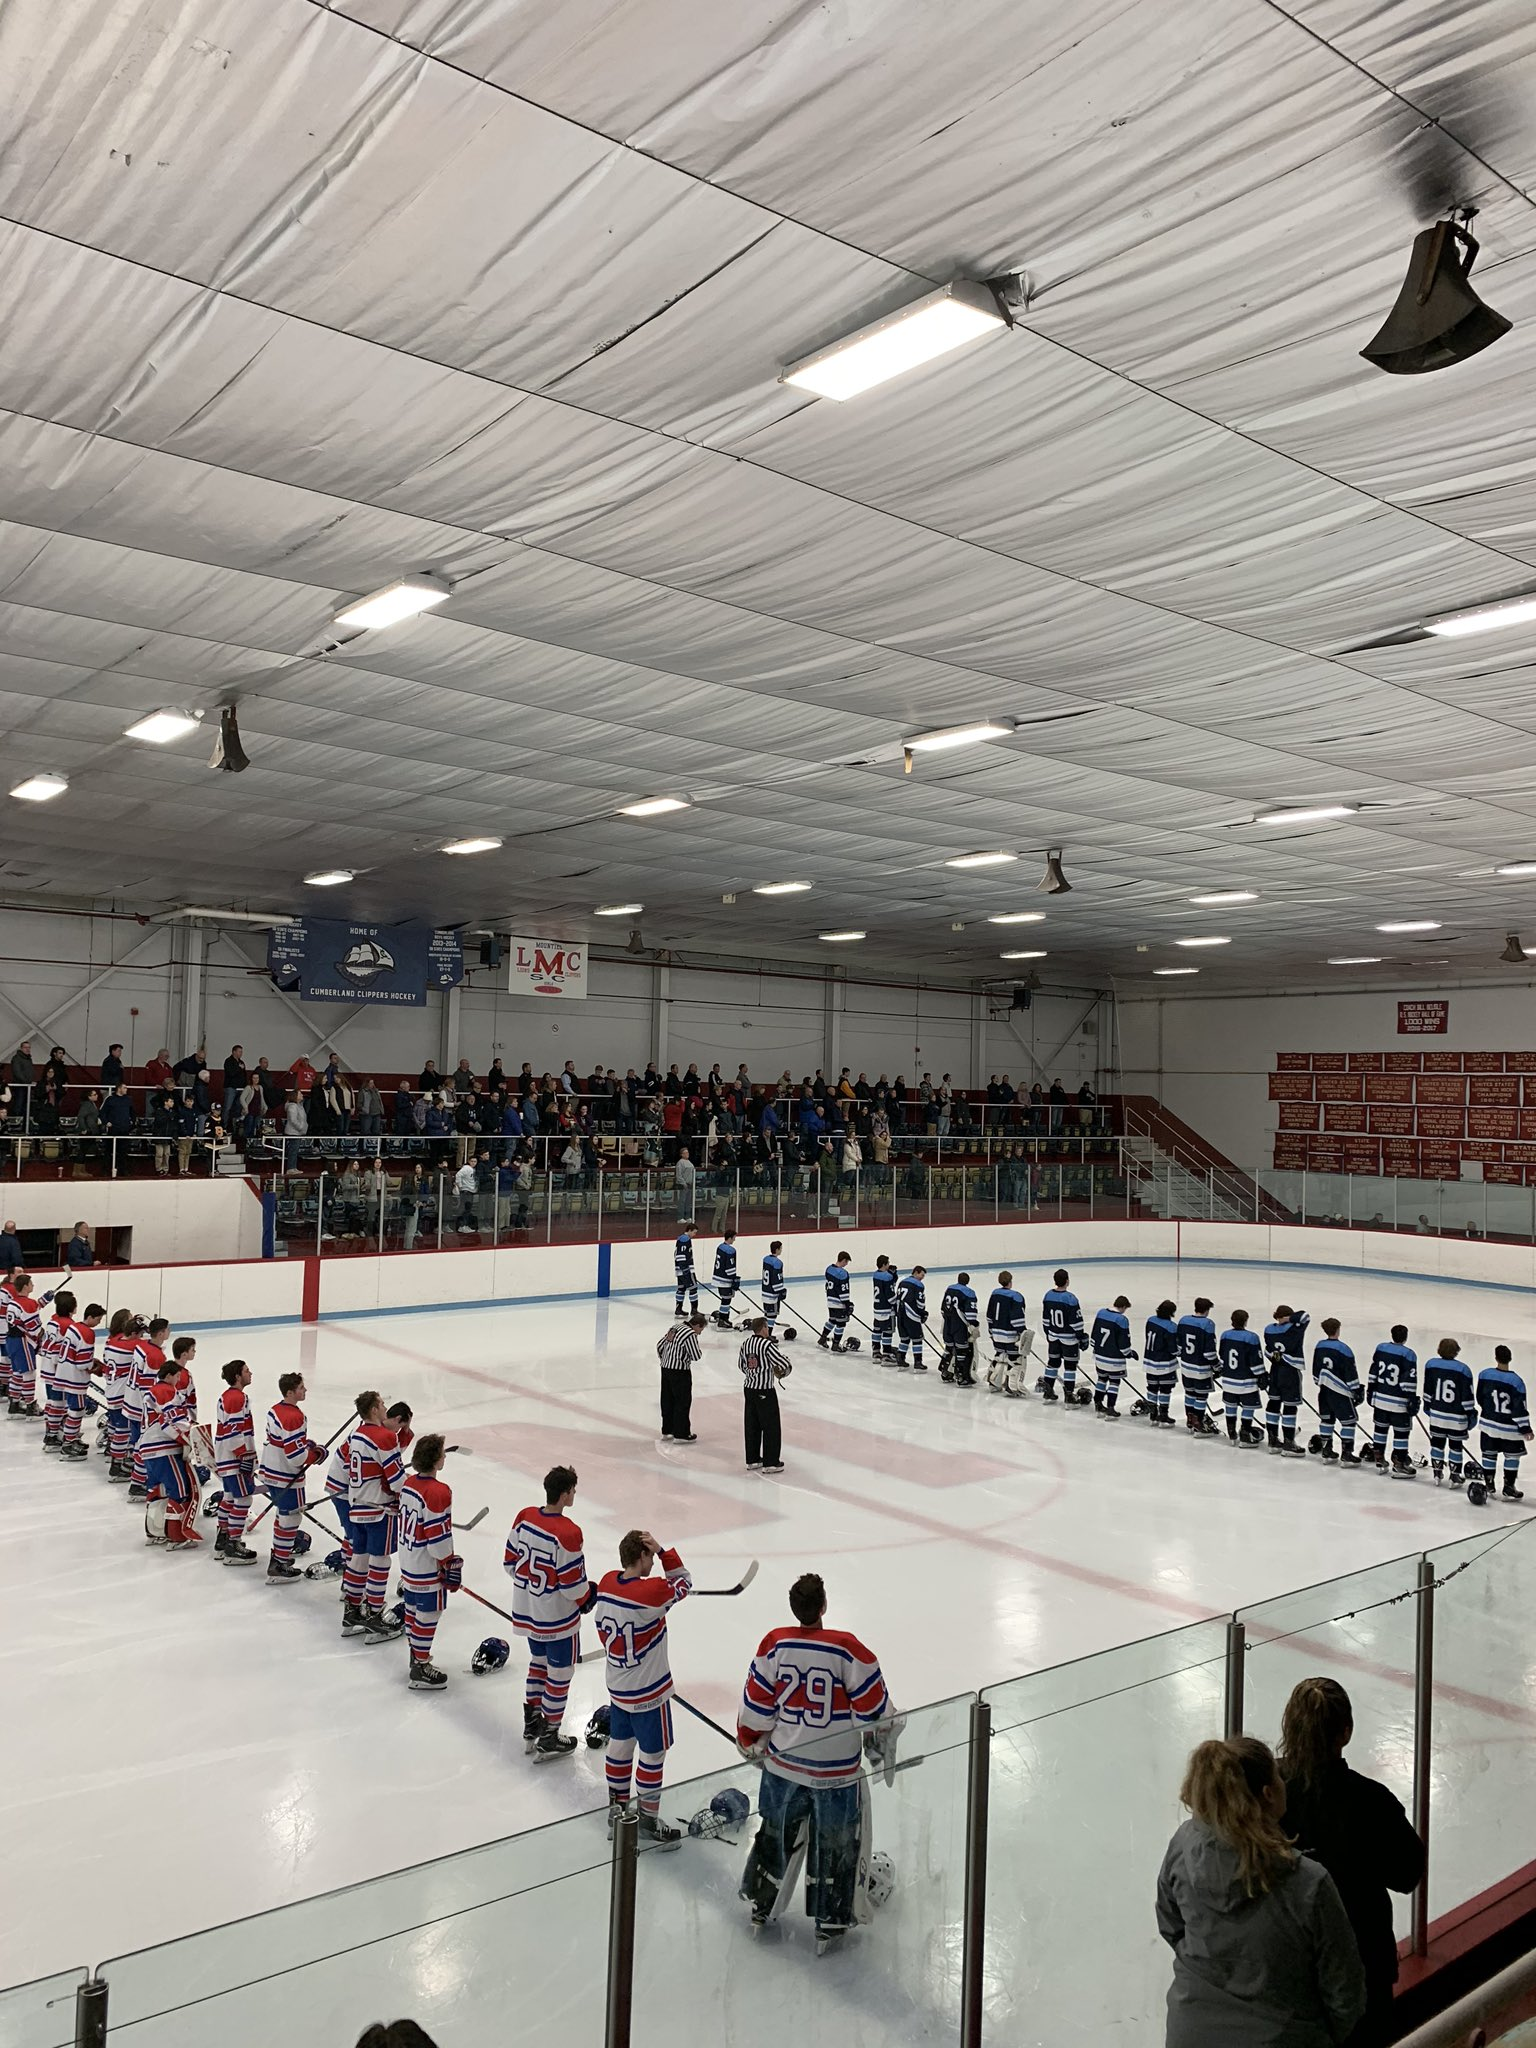 lined up before puck drop